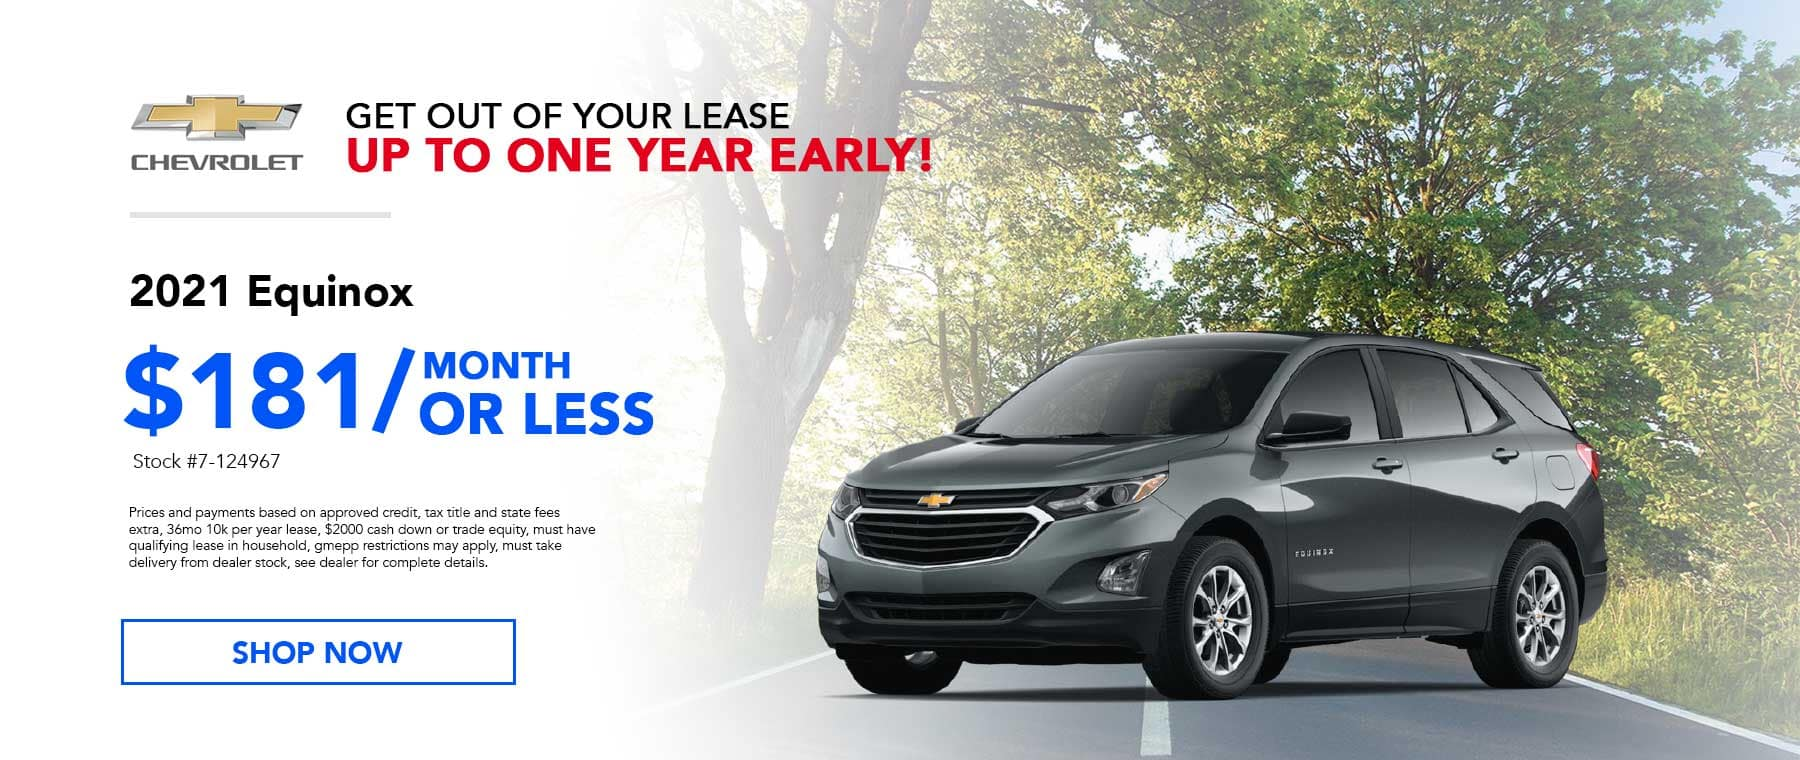 May 2021 Equinox Lease Specials